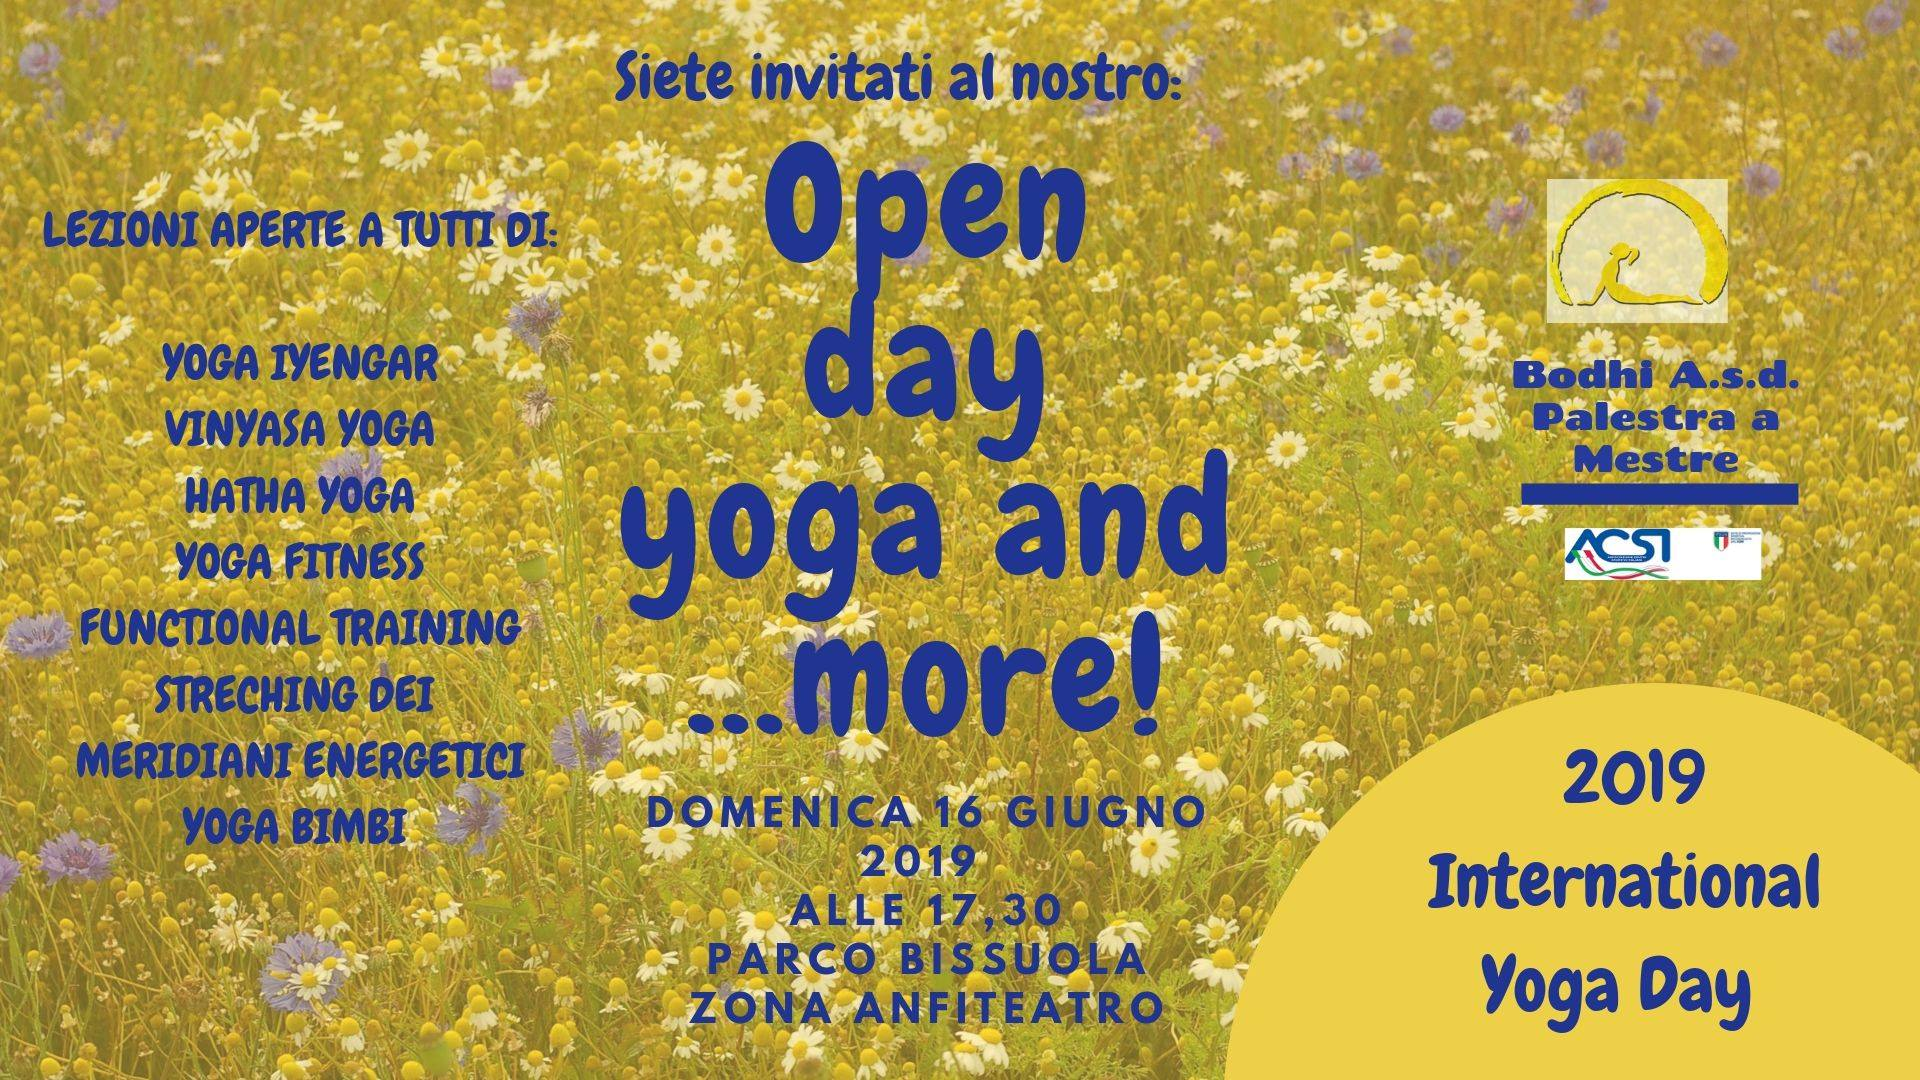 Open Day Yoga and more!